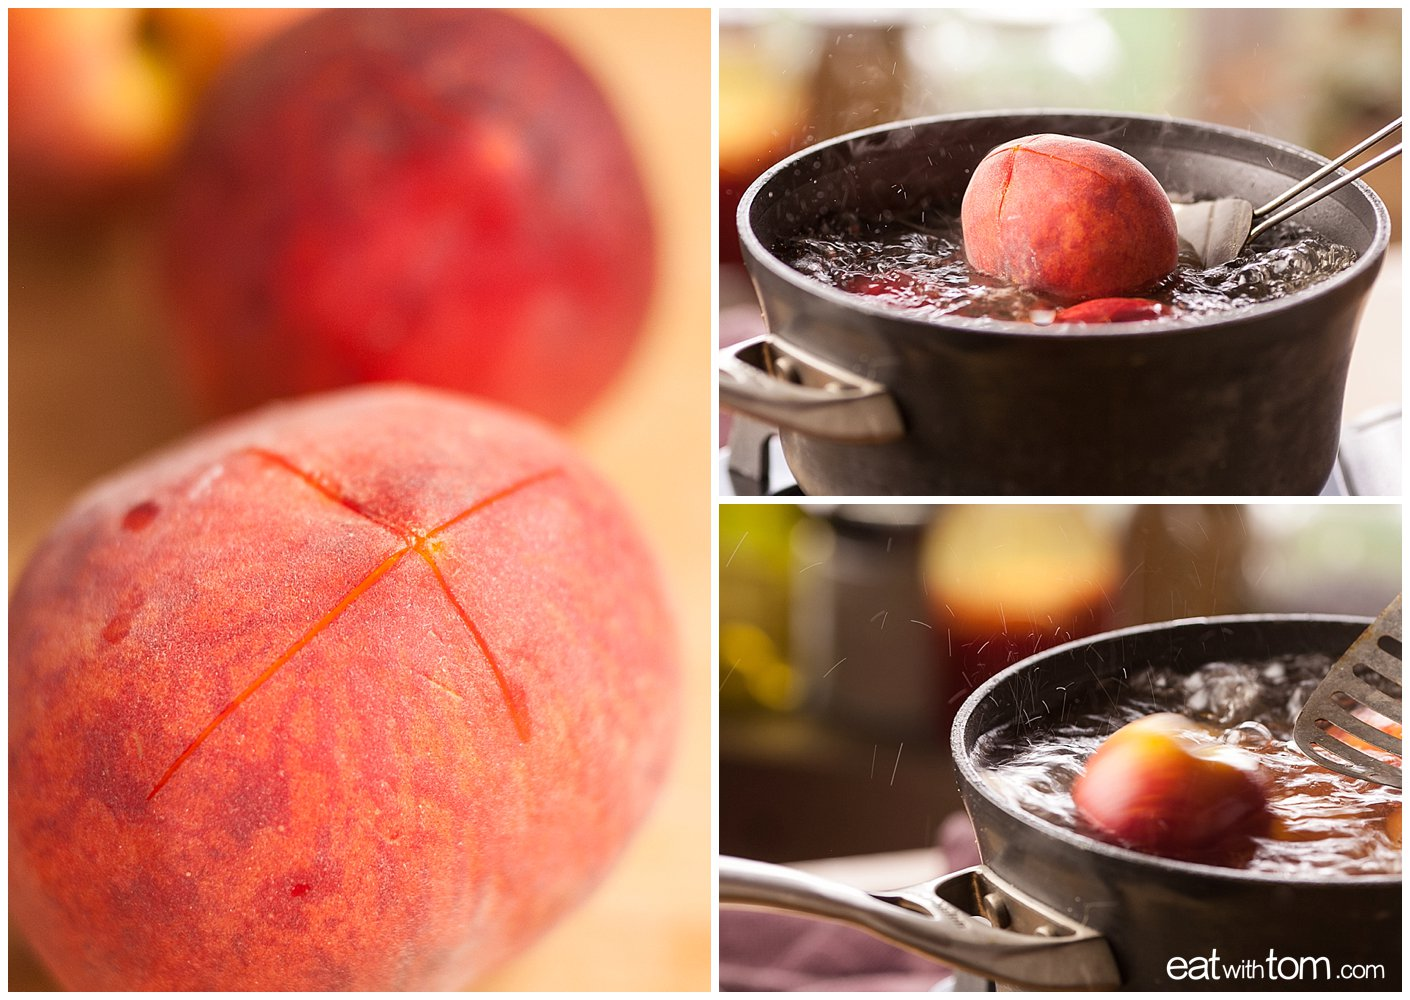 Peach quinoa crumble dessert recipe -How to peel peaches for peach cobbler crisp crumble